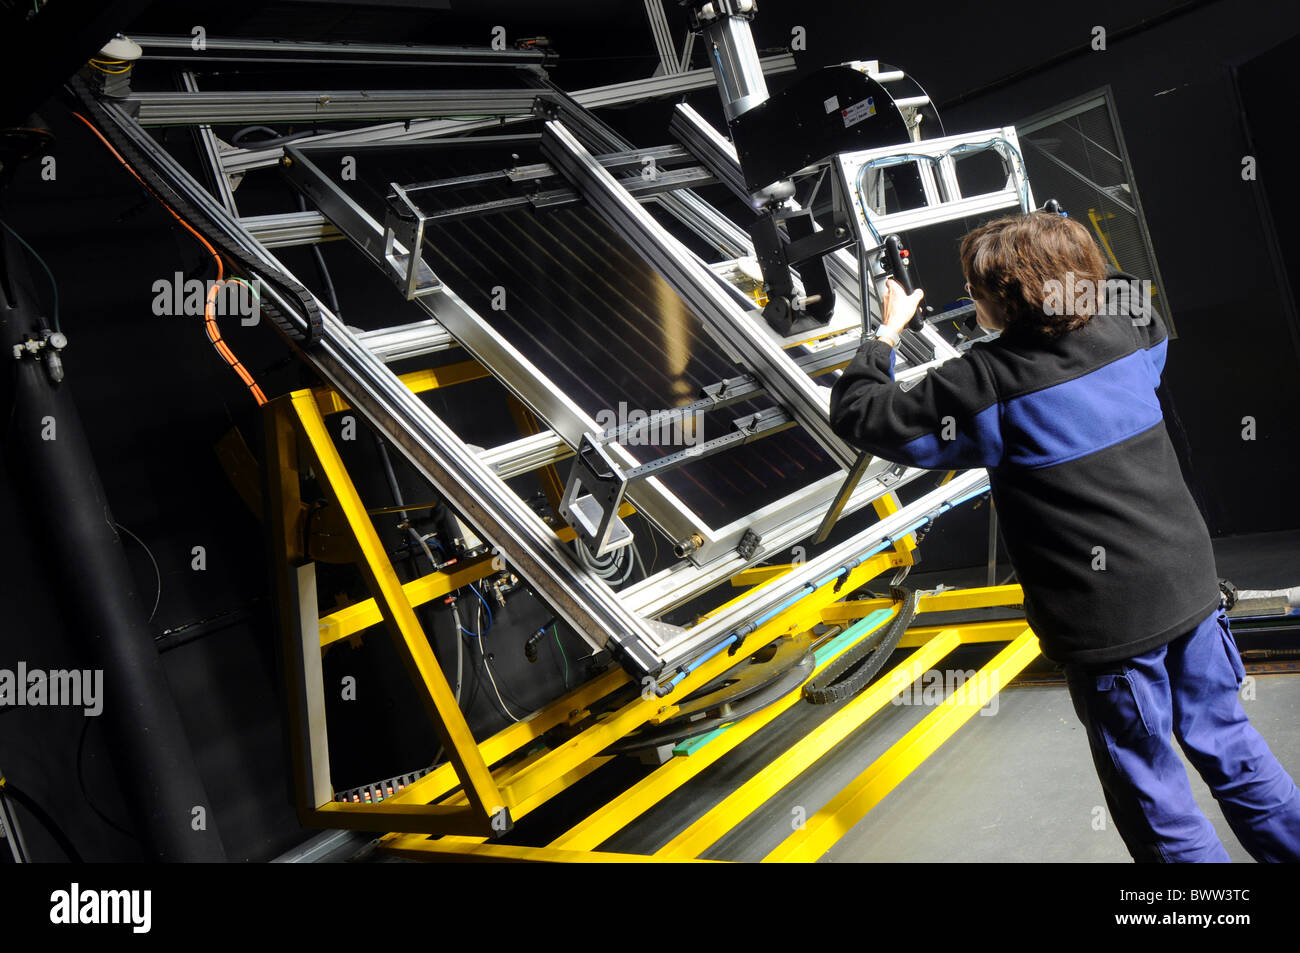 Solar panel light testing research room at the National Renewable Energy Centre in Navarra, Spain - Stock Image